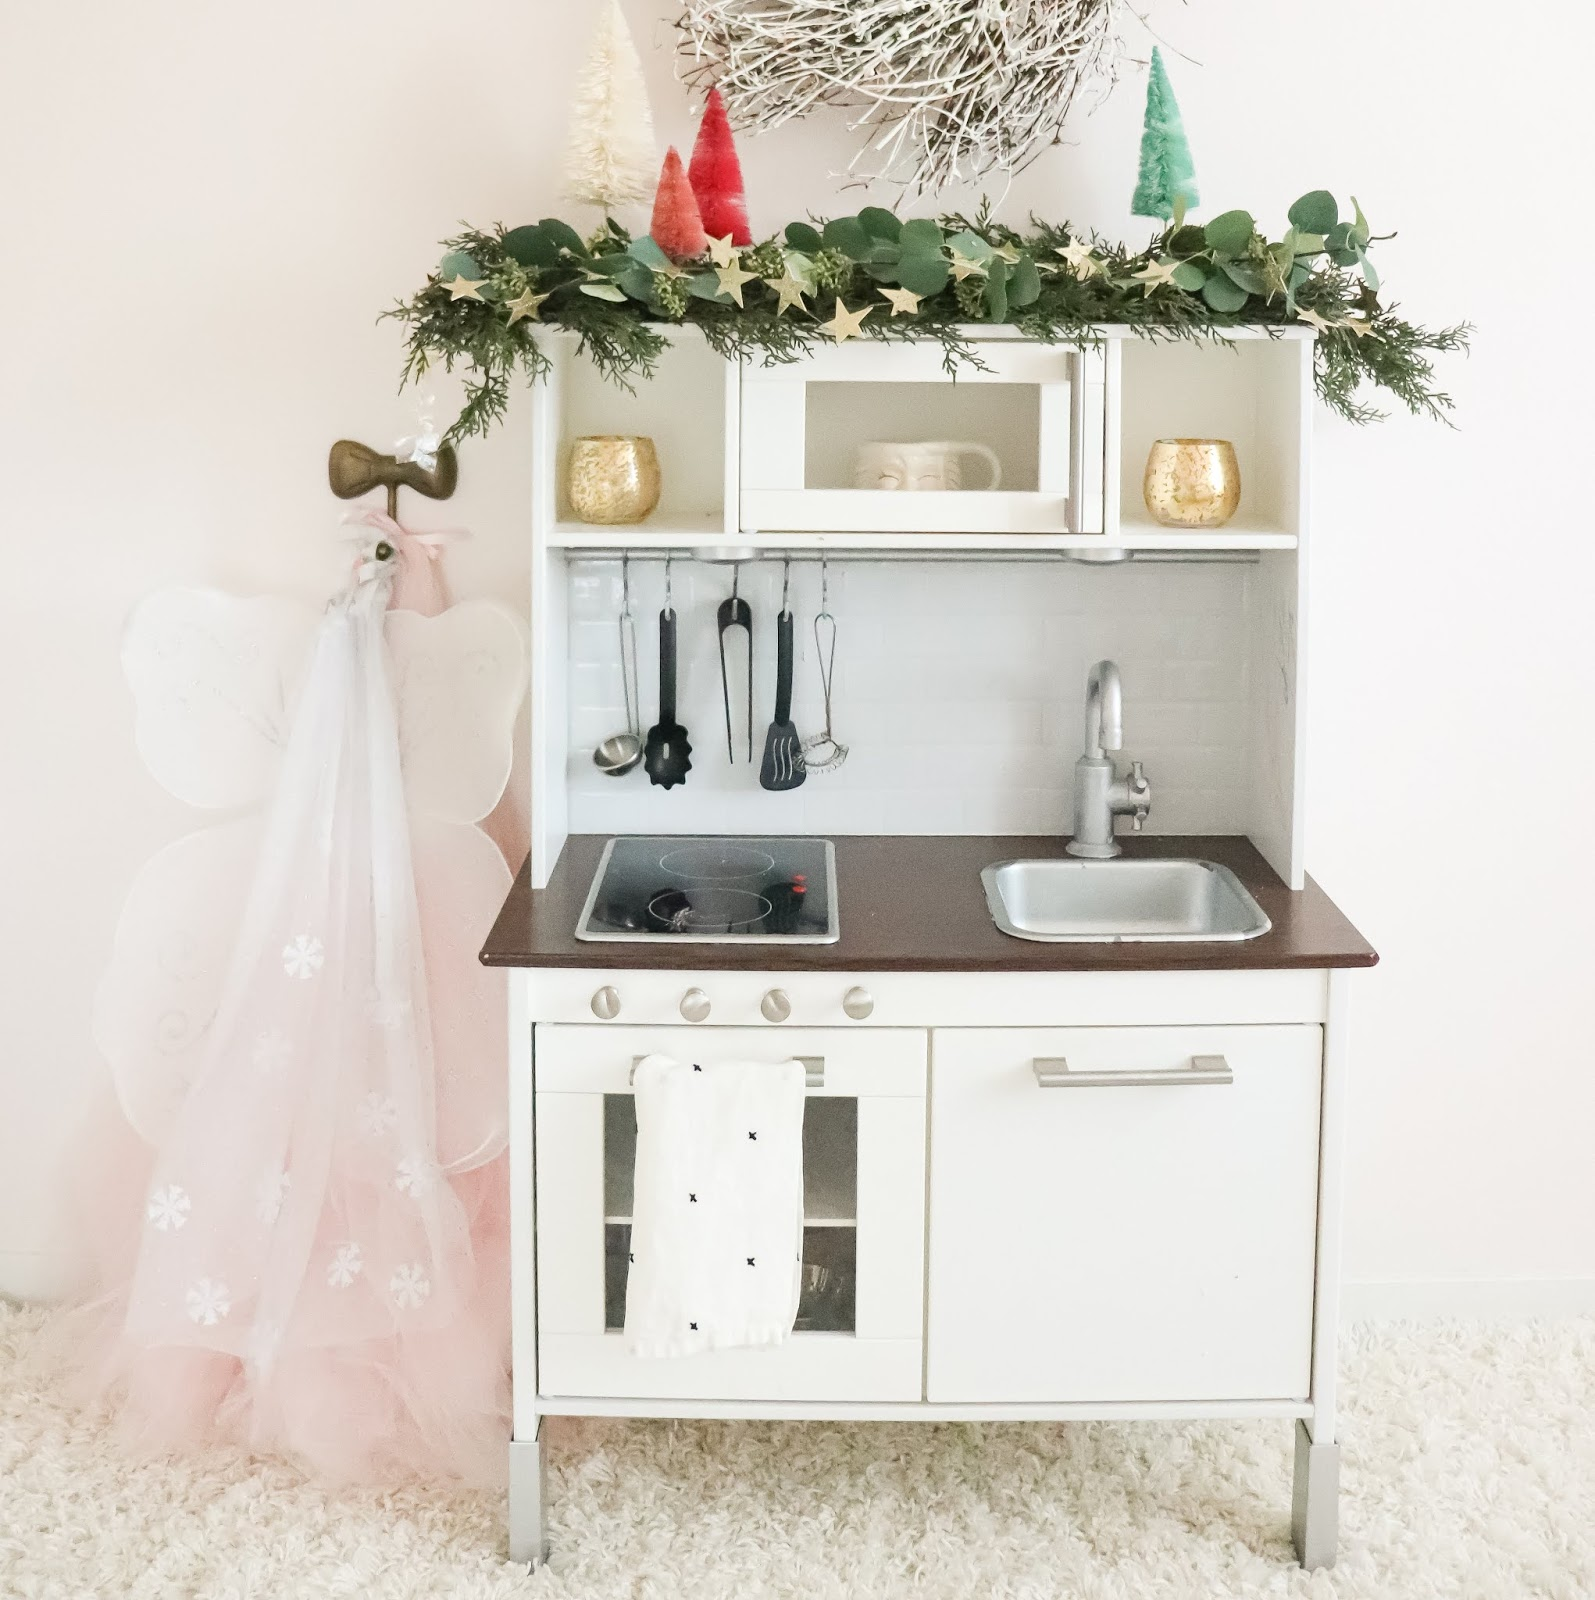 DIY upgraded play kitchen